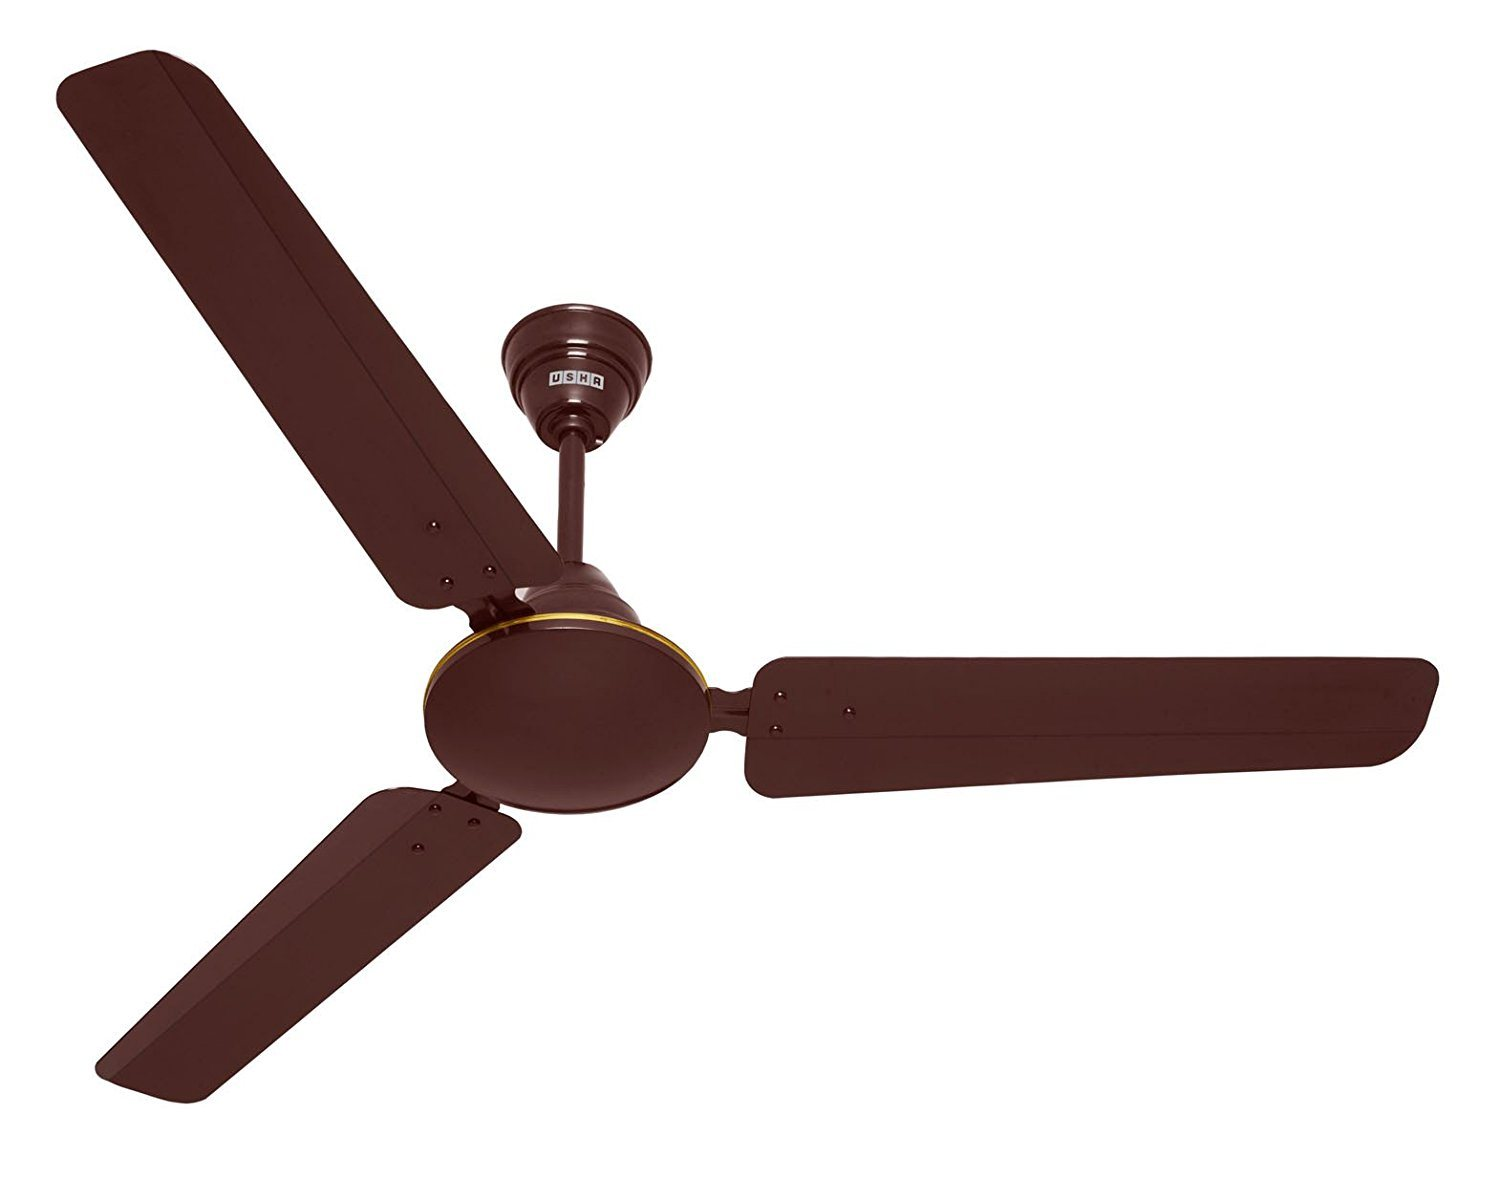 It Is Also An Energy Efficient Ceiling Fan With A Wonderful Design That Contributes To Its Beauty